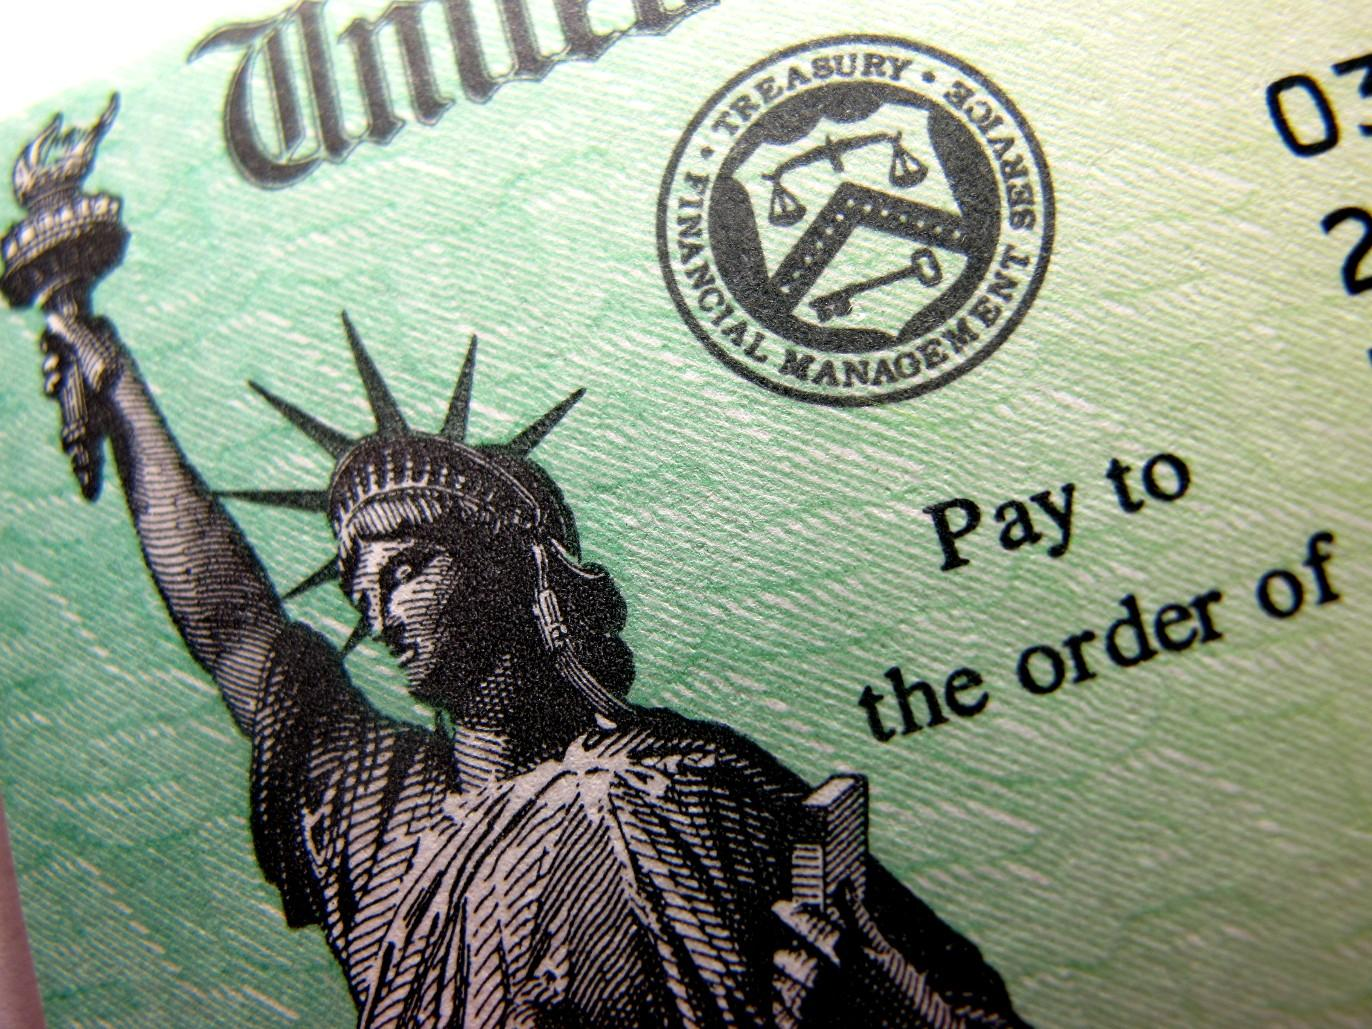 Stimulus Check: Do you qualify? How much are you going to get?